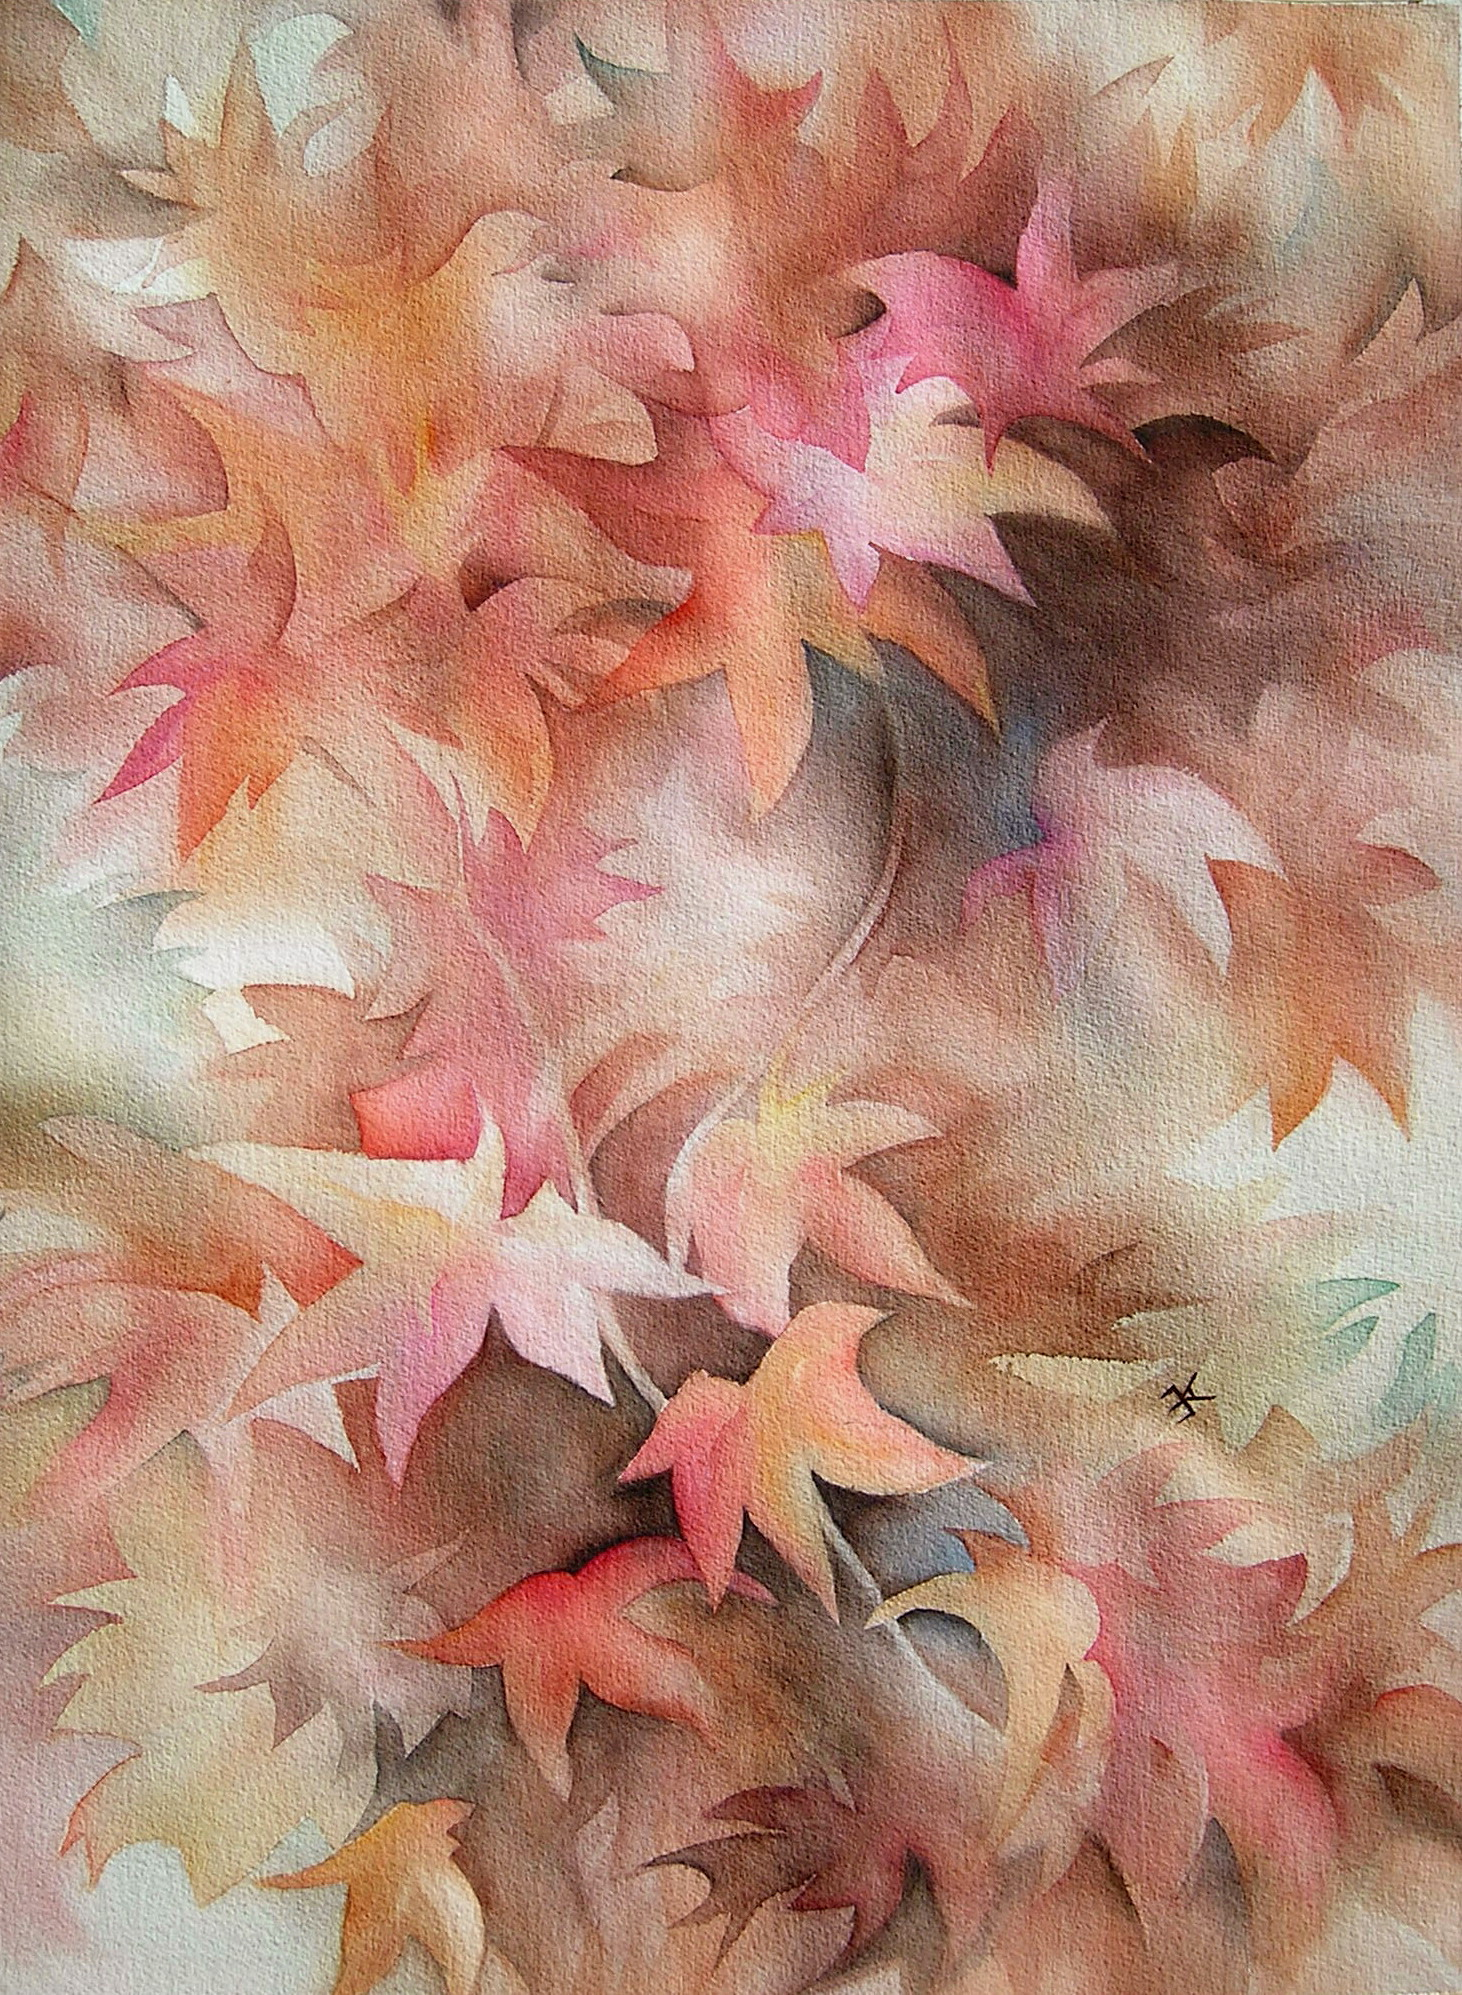 Dancing Leaves painting